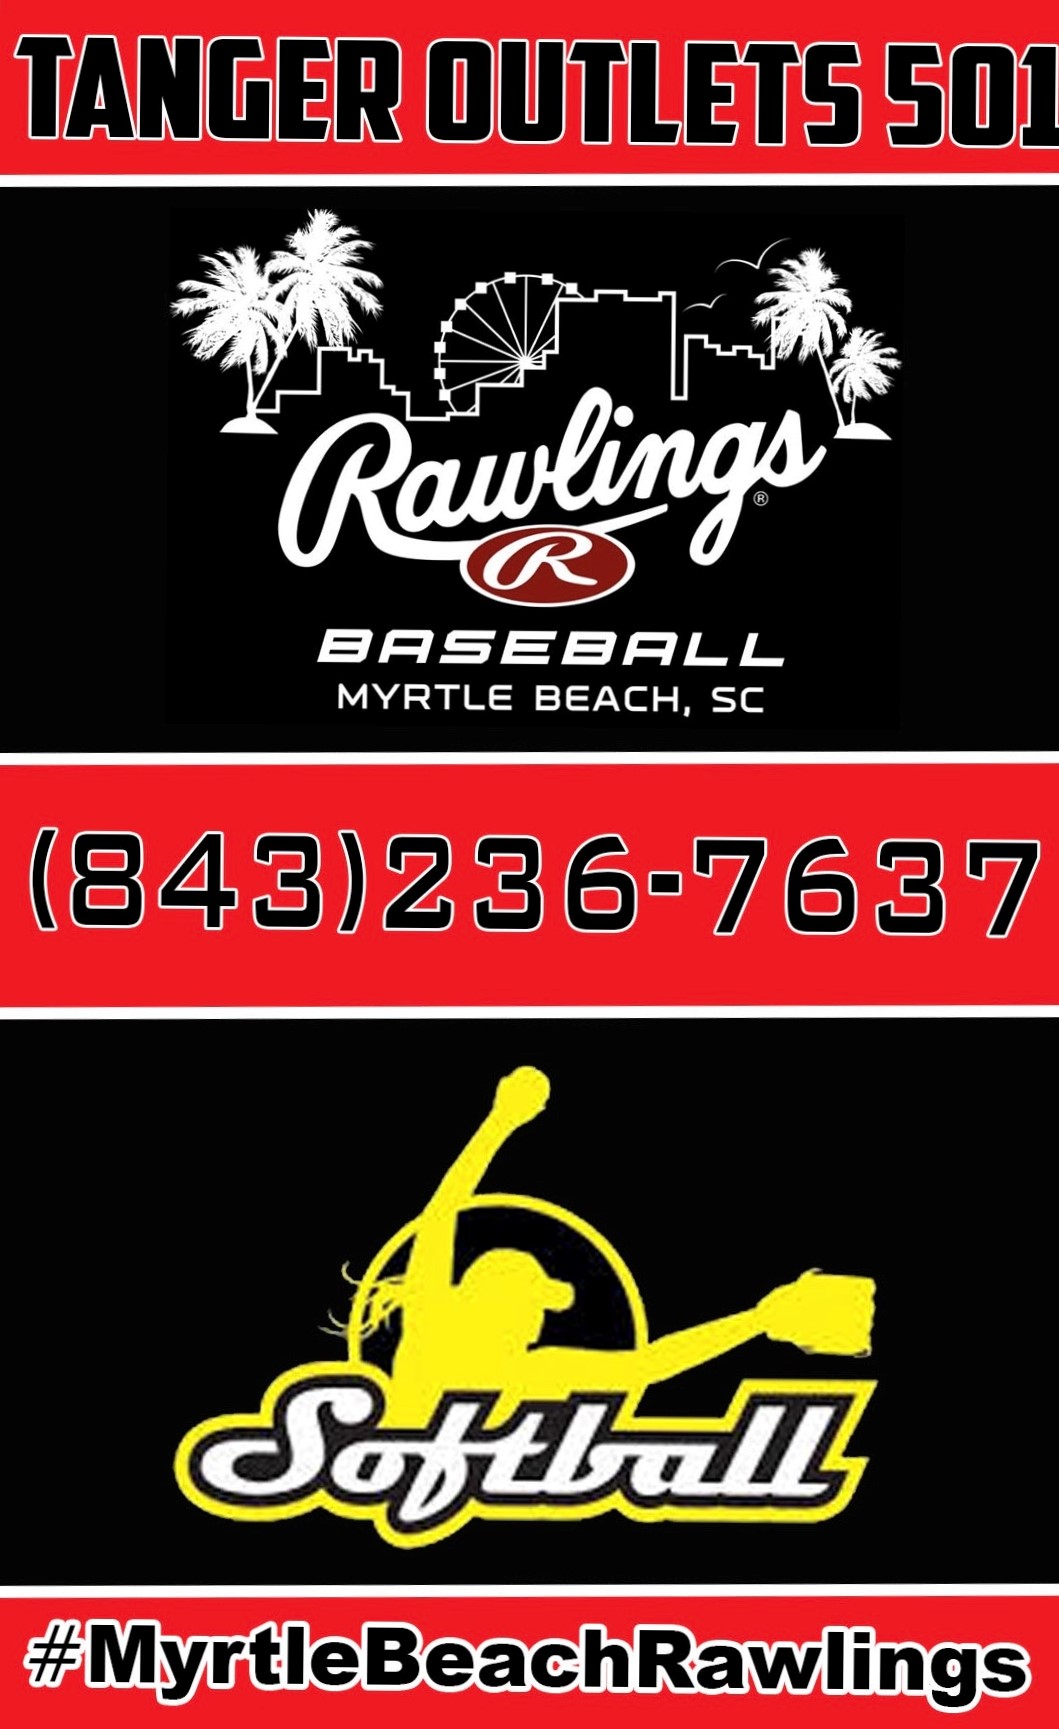 Rawlings Myrtle Beach